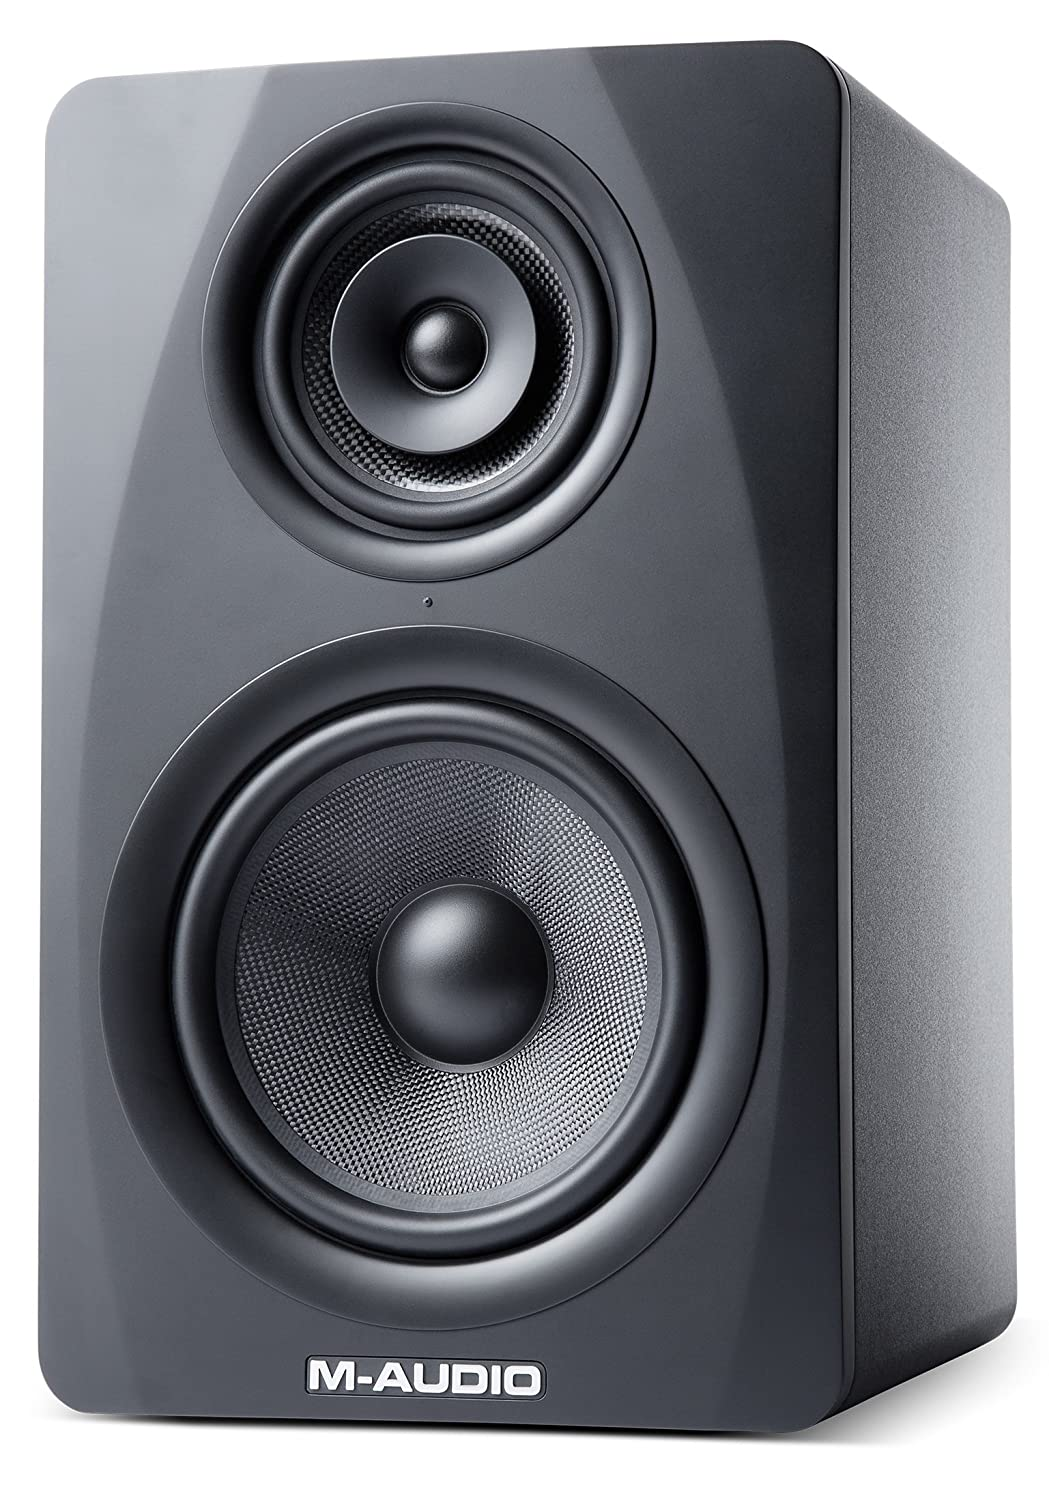 Amazon.com: M-Audio M3-8 (black) M3-8 | 3-Way Active Studio Monitor Speaker  with 8-inch Woven Kevlar Woofer (Single/Black): Musical Instruments